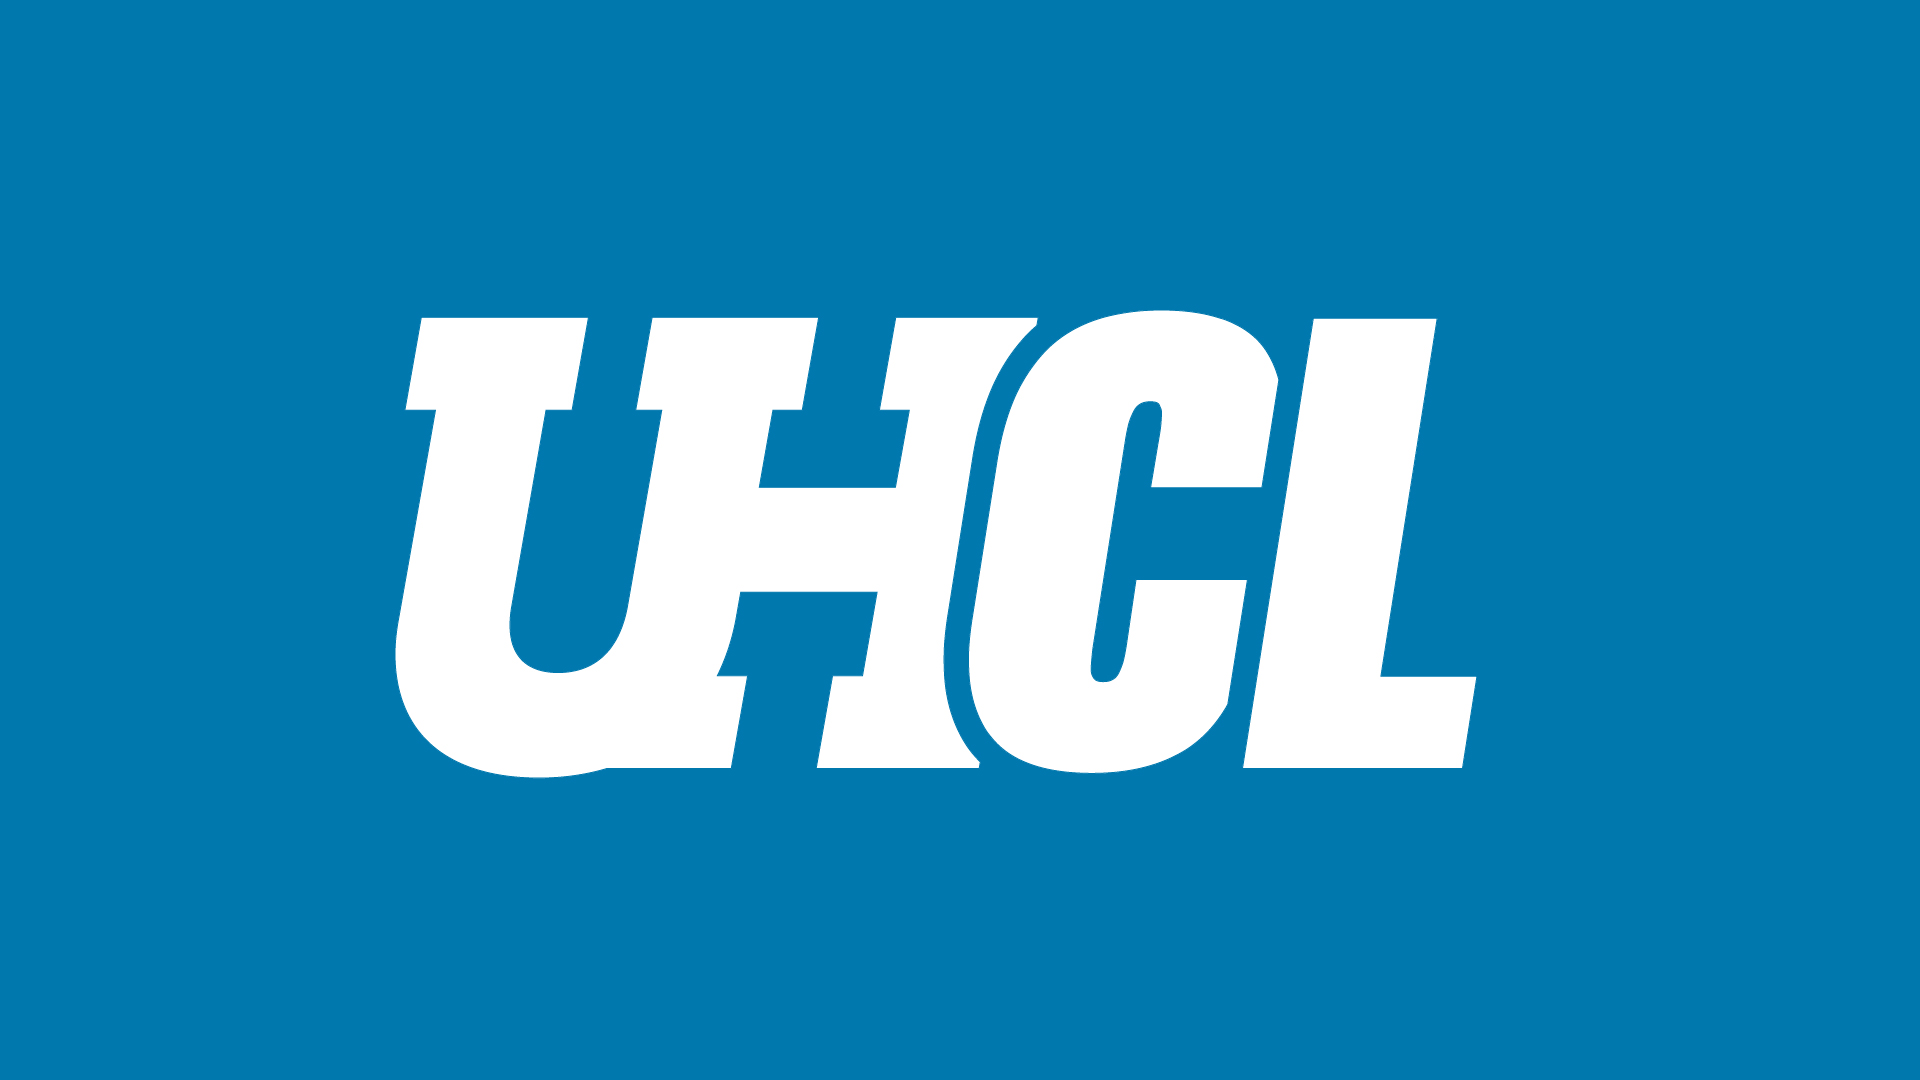 UHCL faculty research briefs